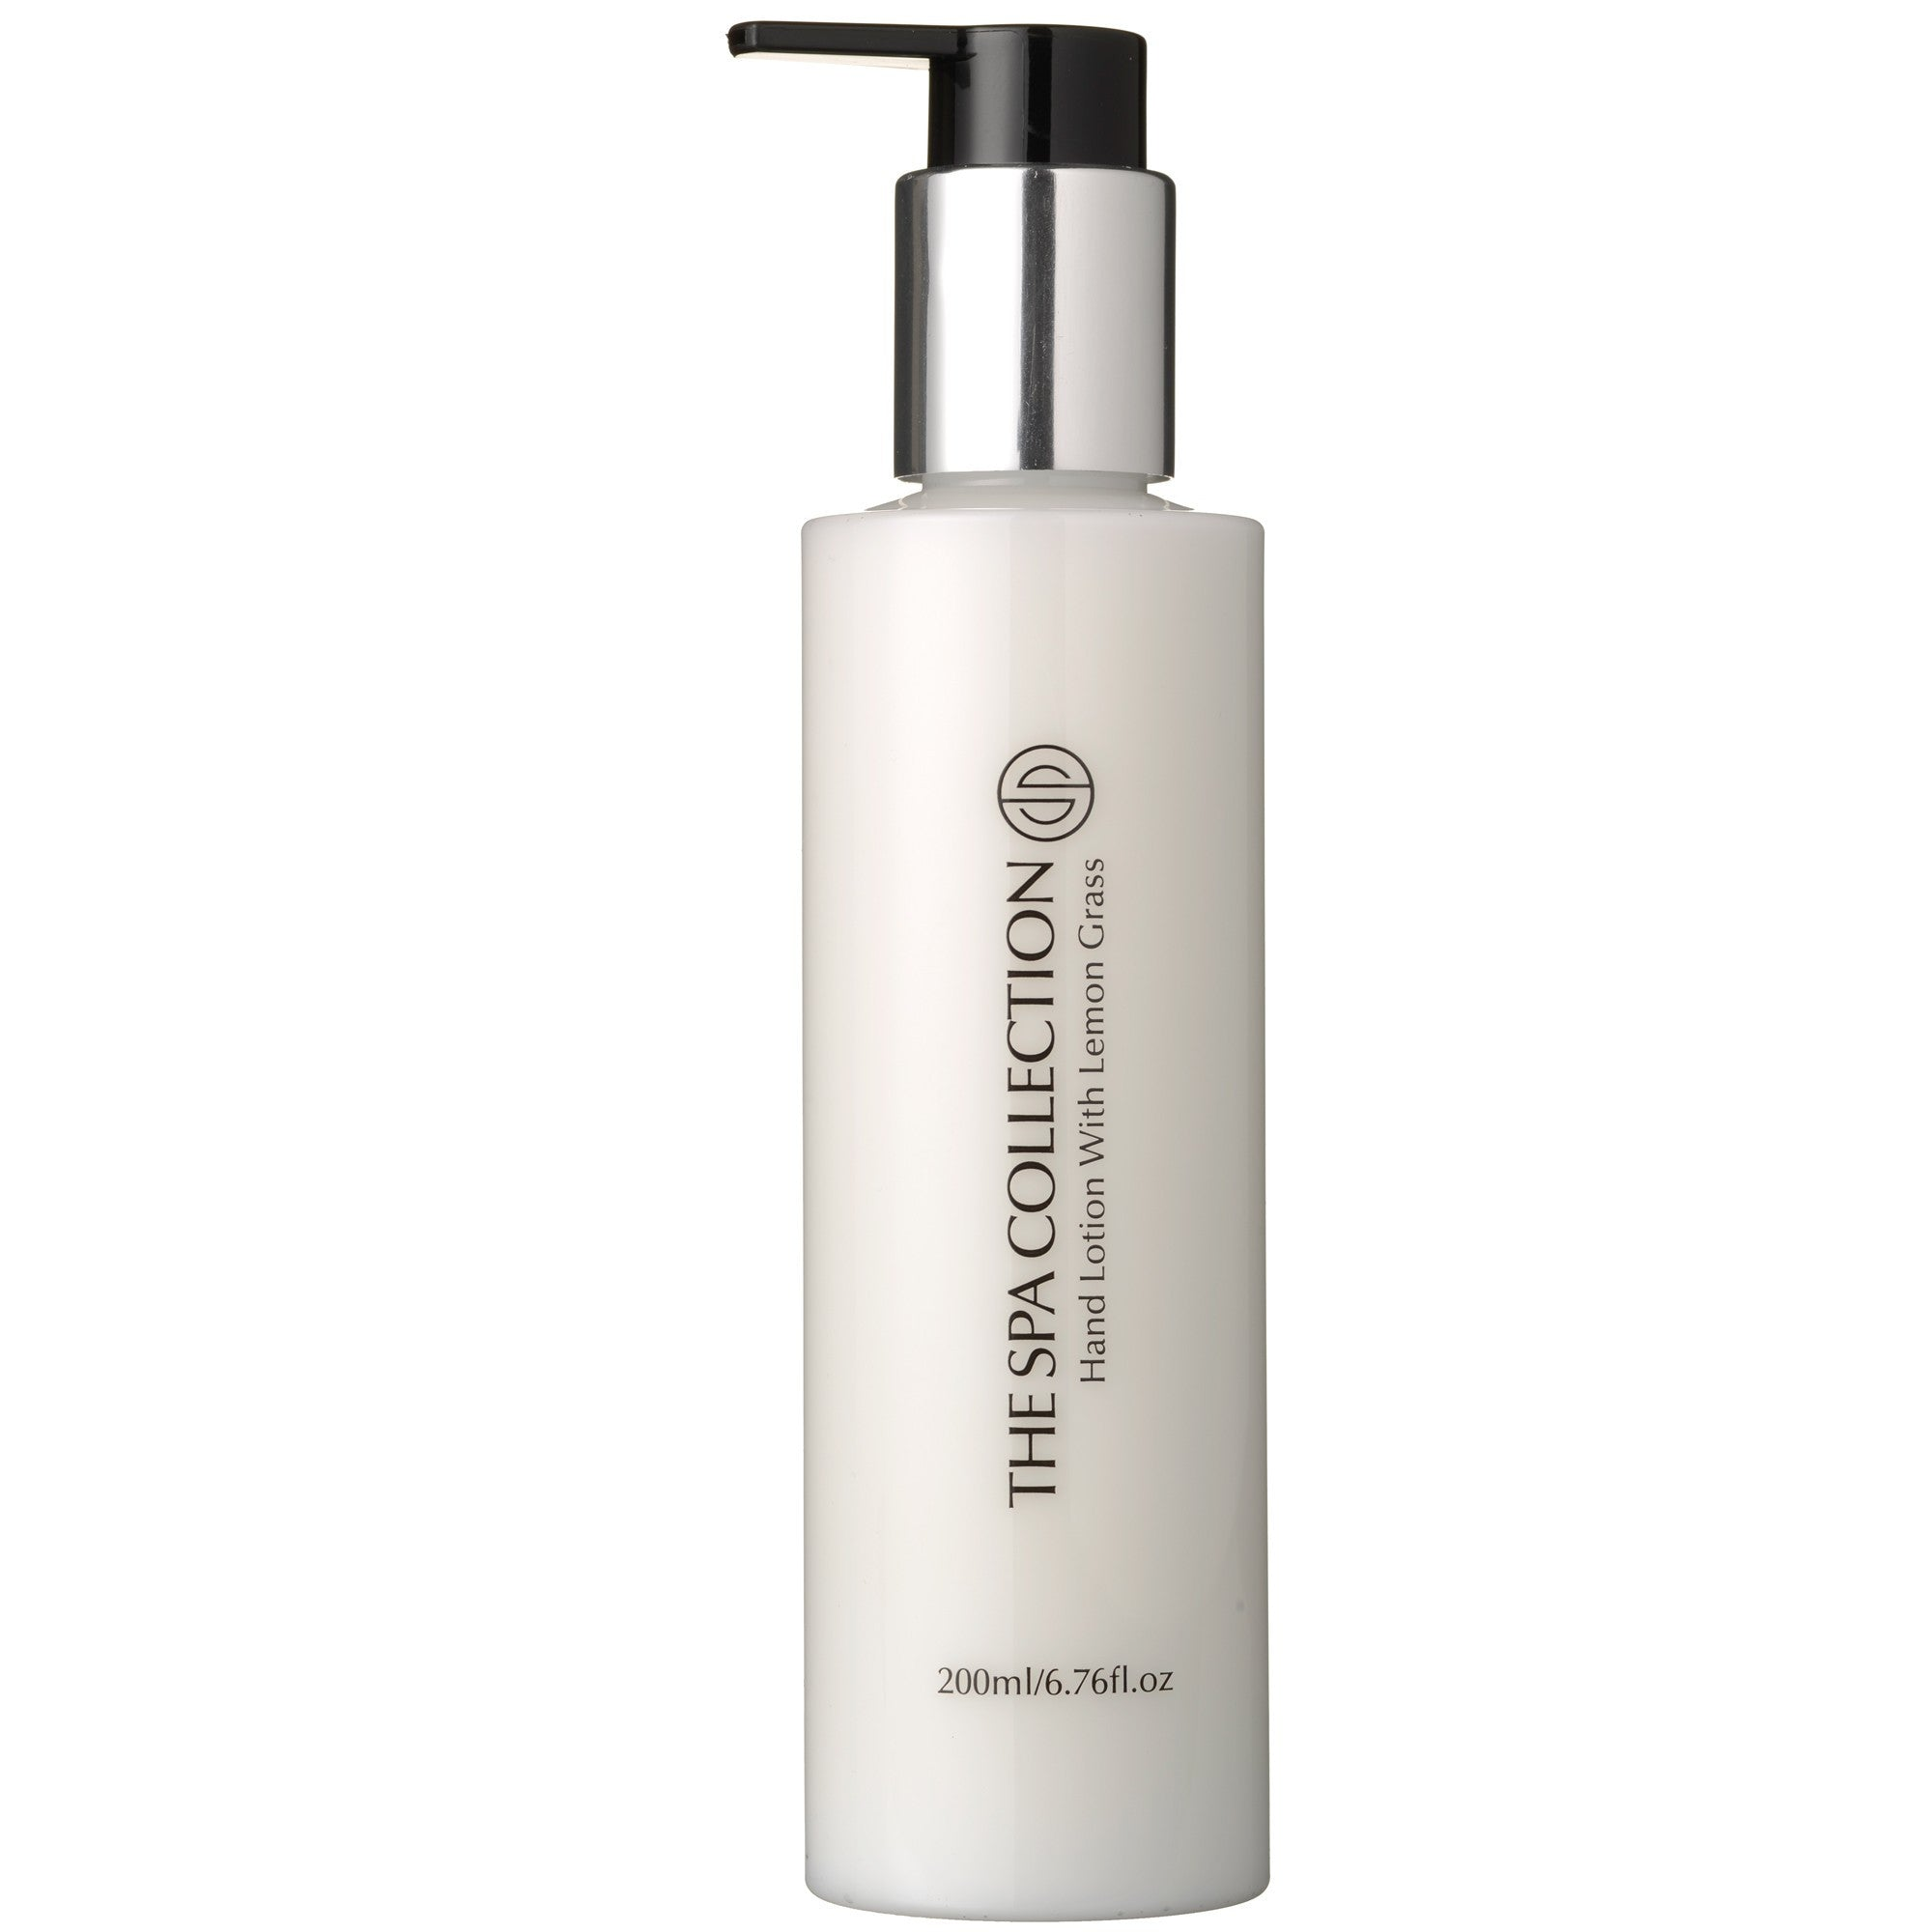 Handlotion Lemongrass 200 ml - The Spa Collection